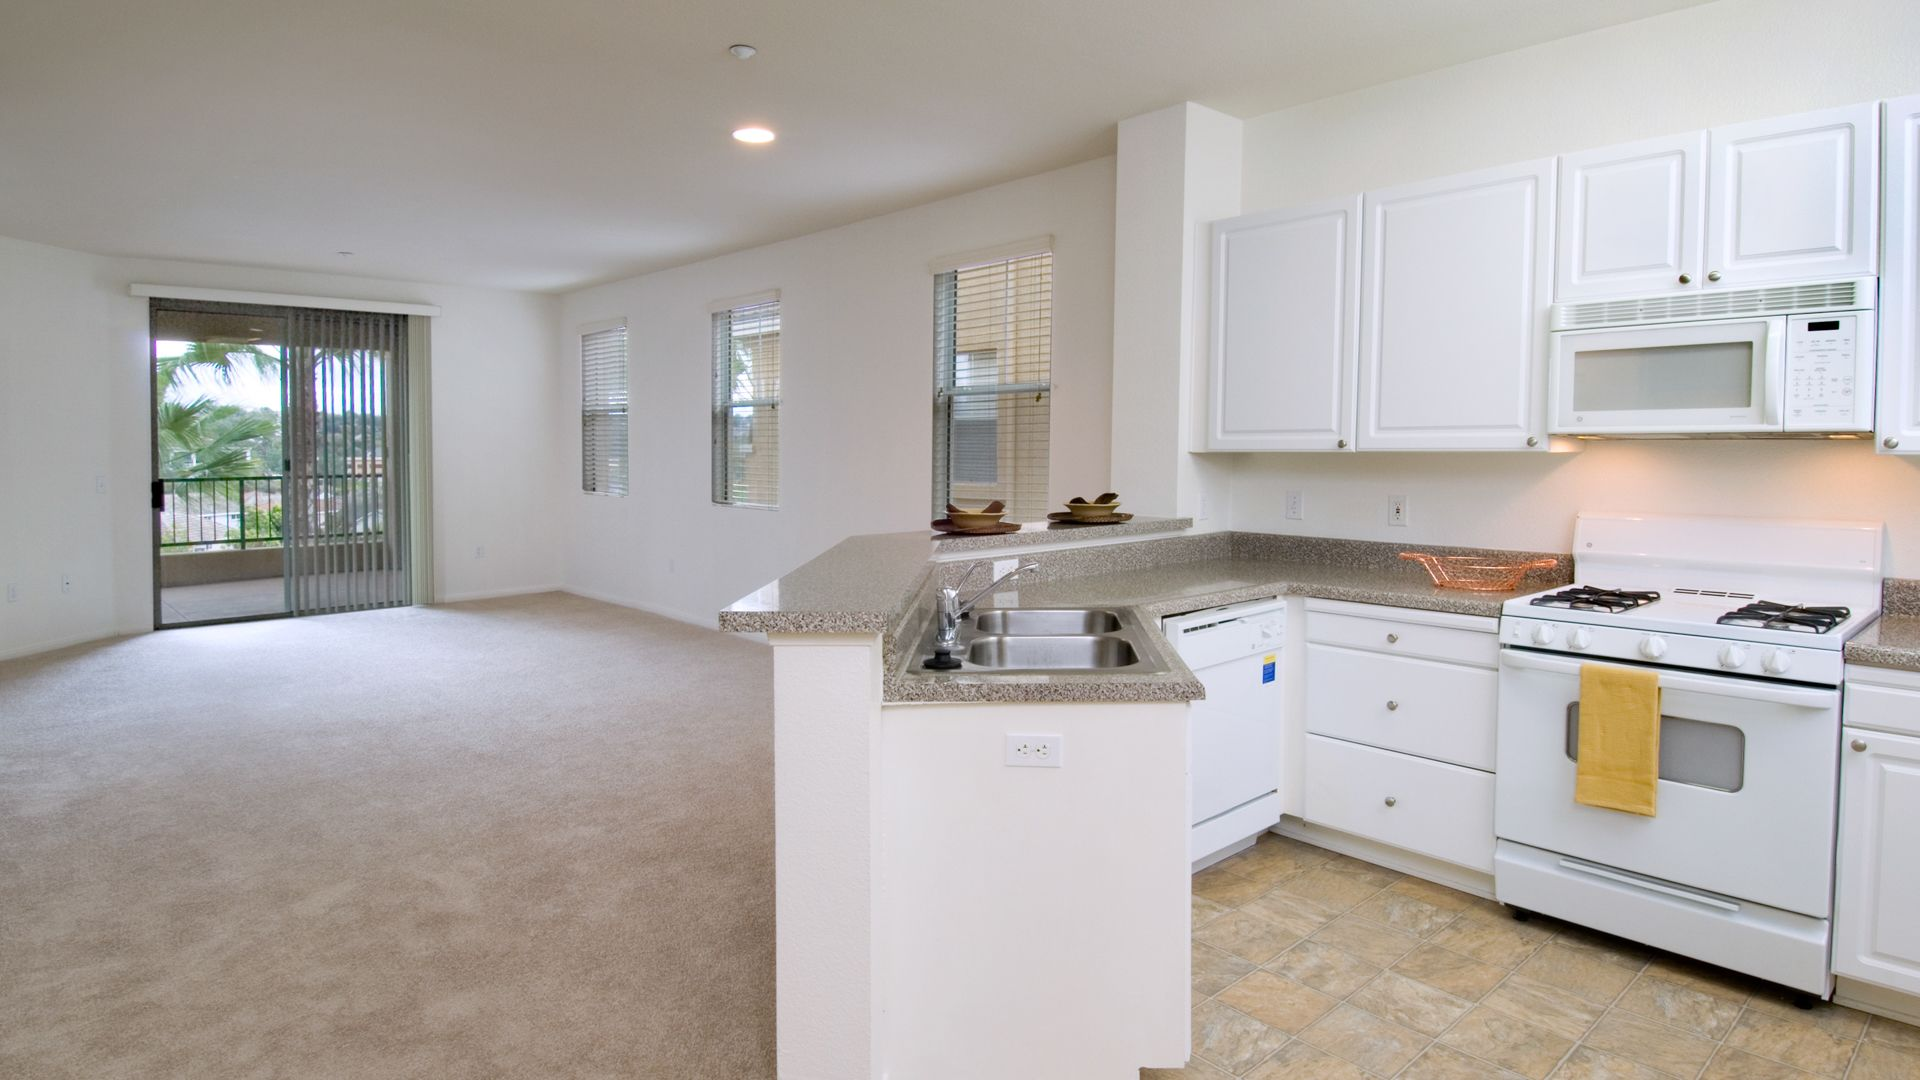 Encinitas Heights Apartments - Kitchen and Living Room